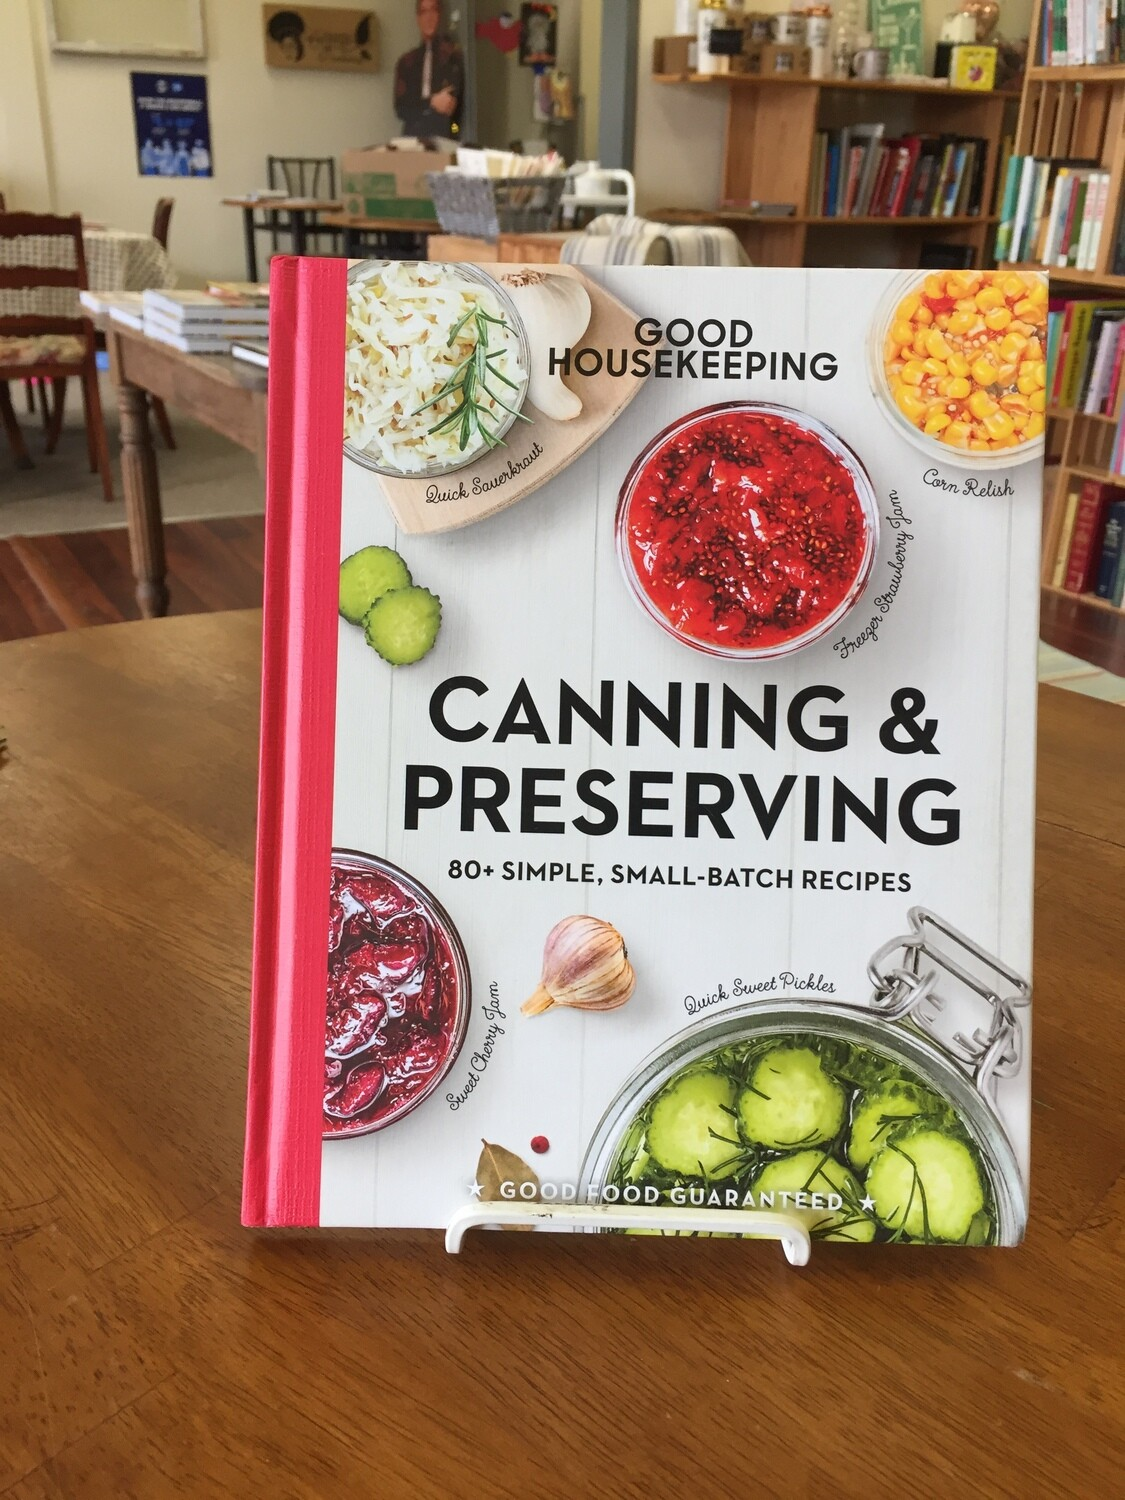 Canning and Preserving Good Housekeeping